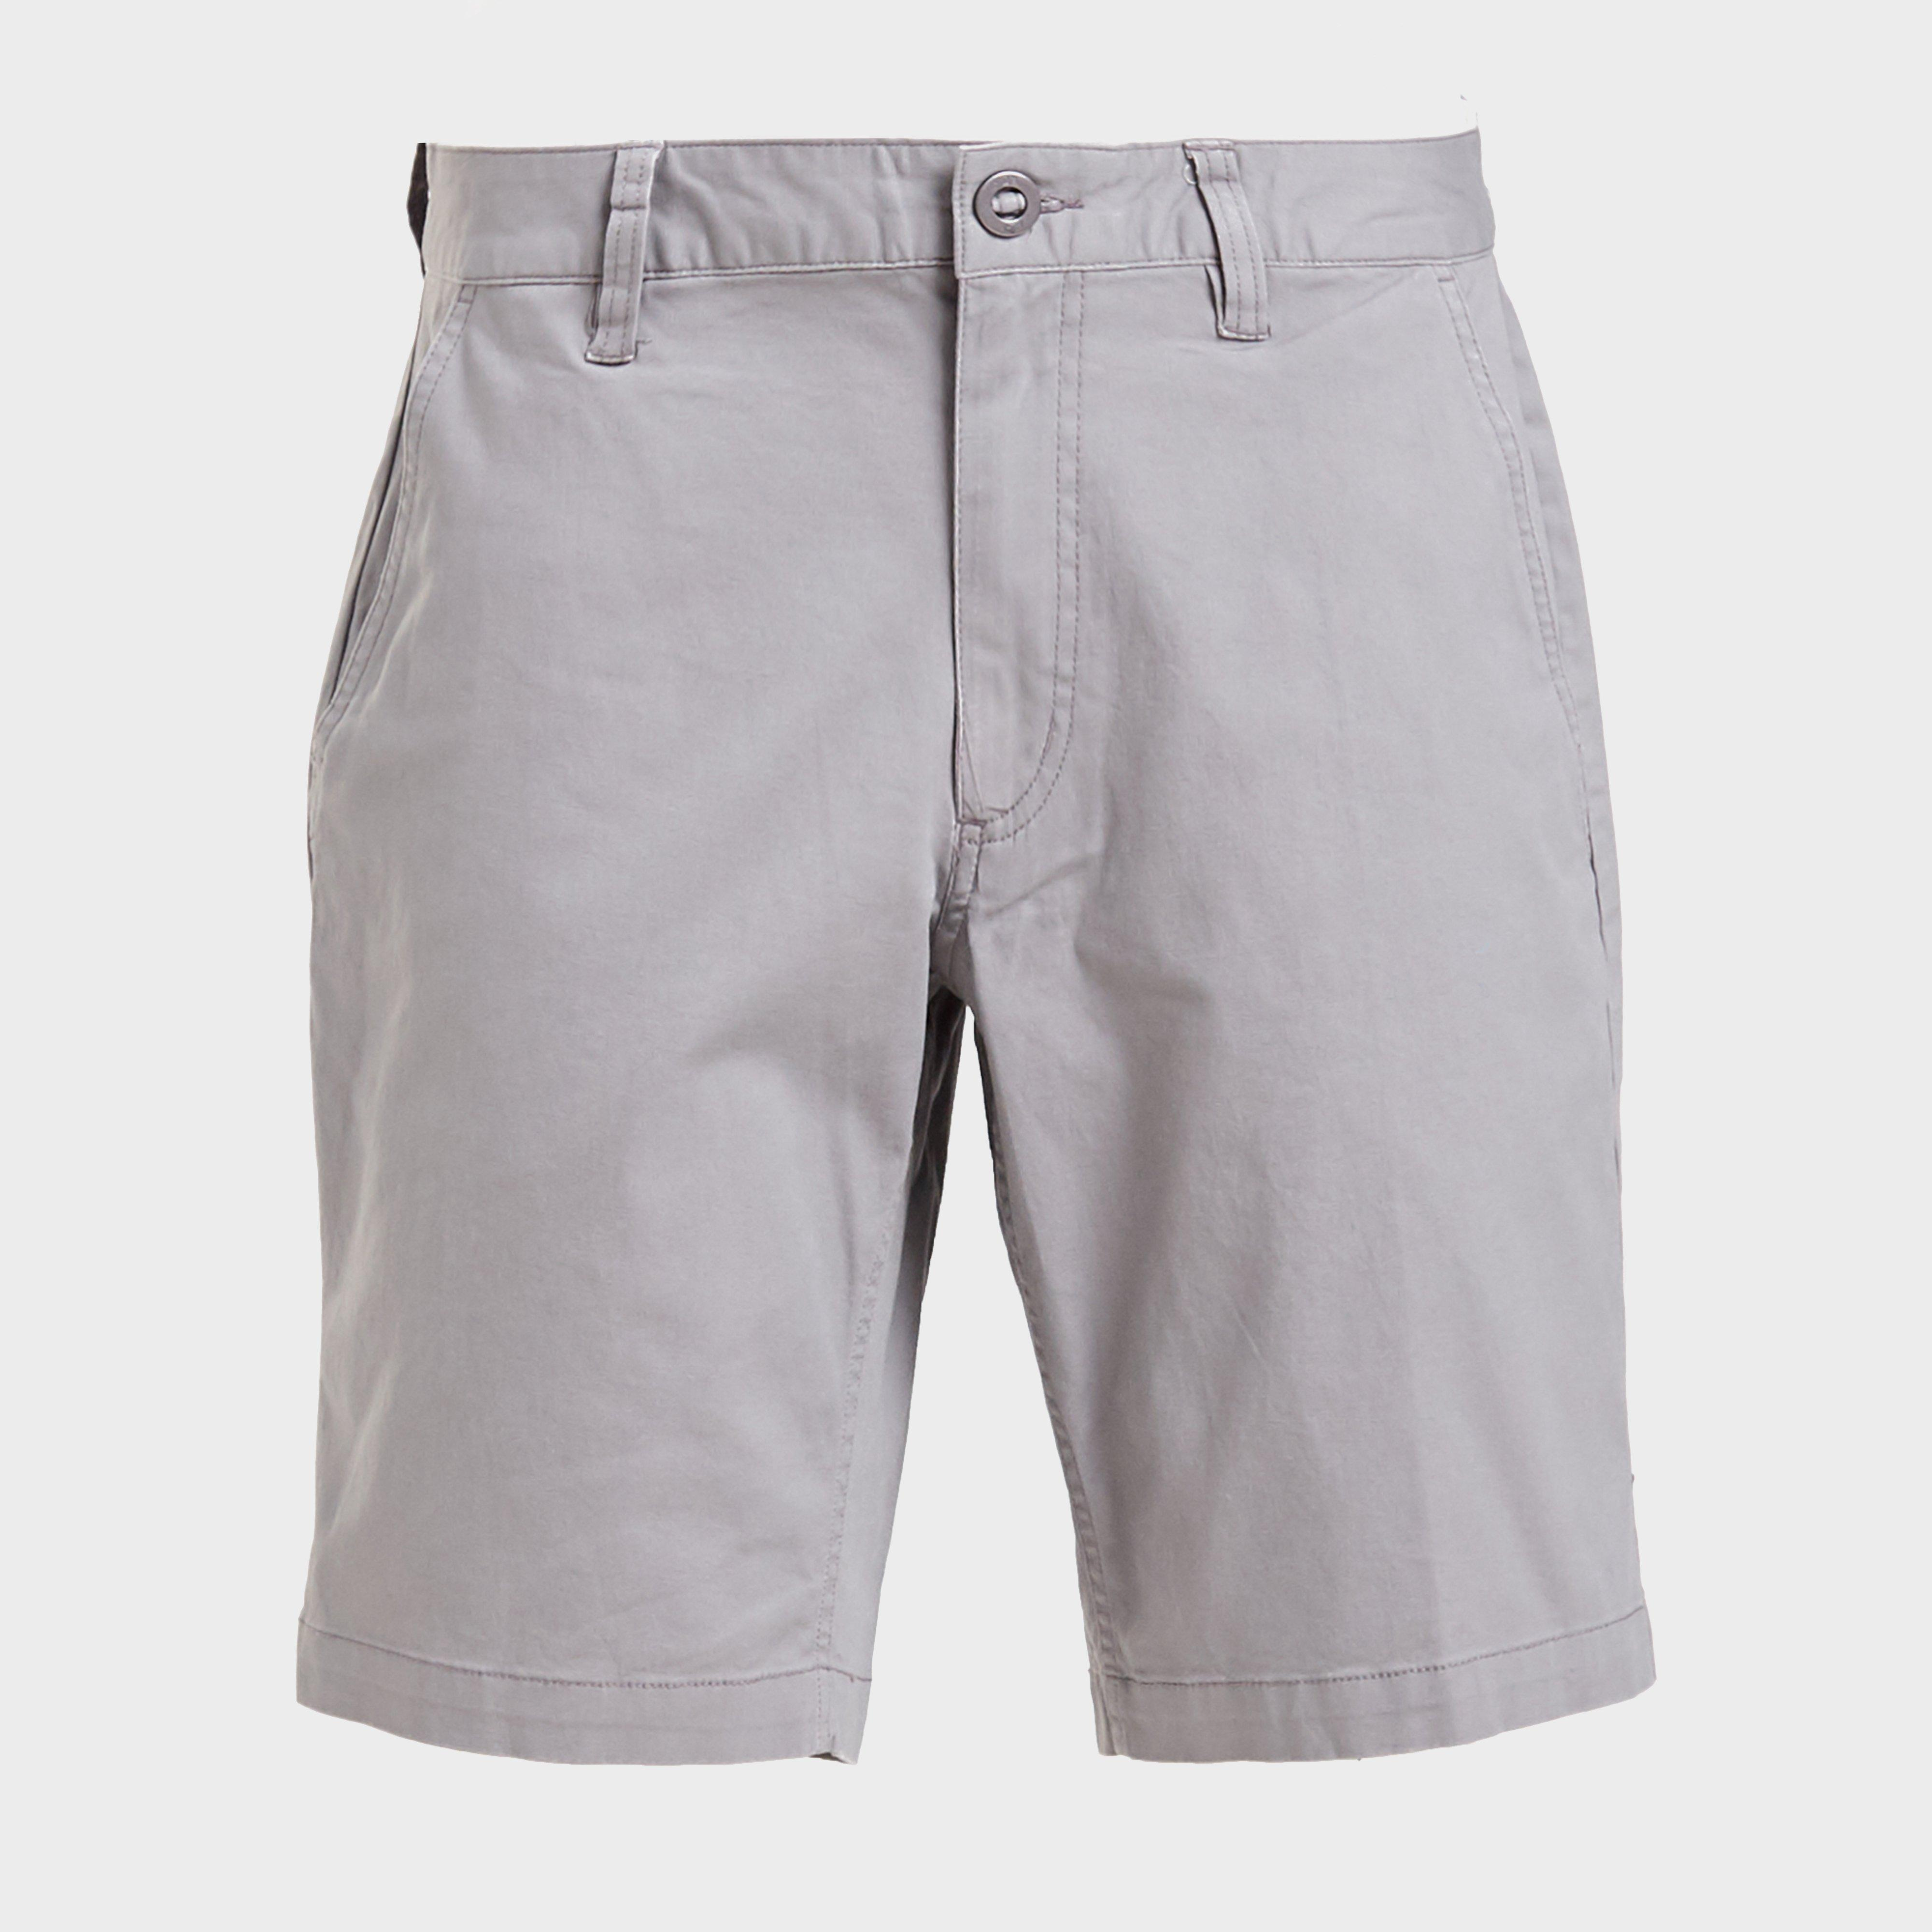 Fox Mens Essex Shorts 20, Grey/Grey